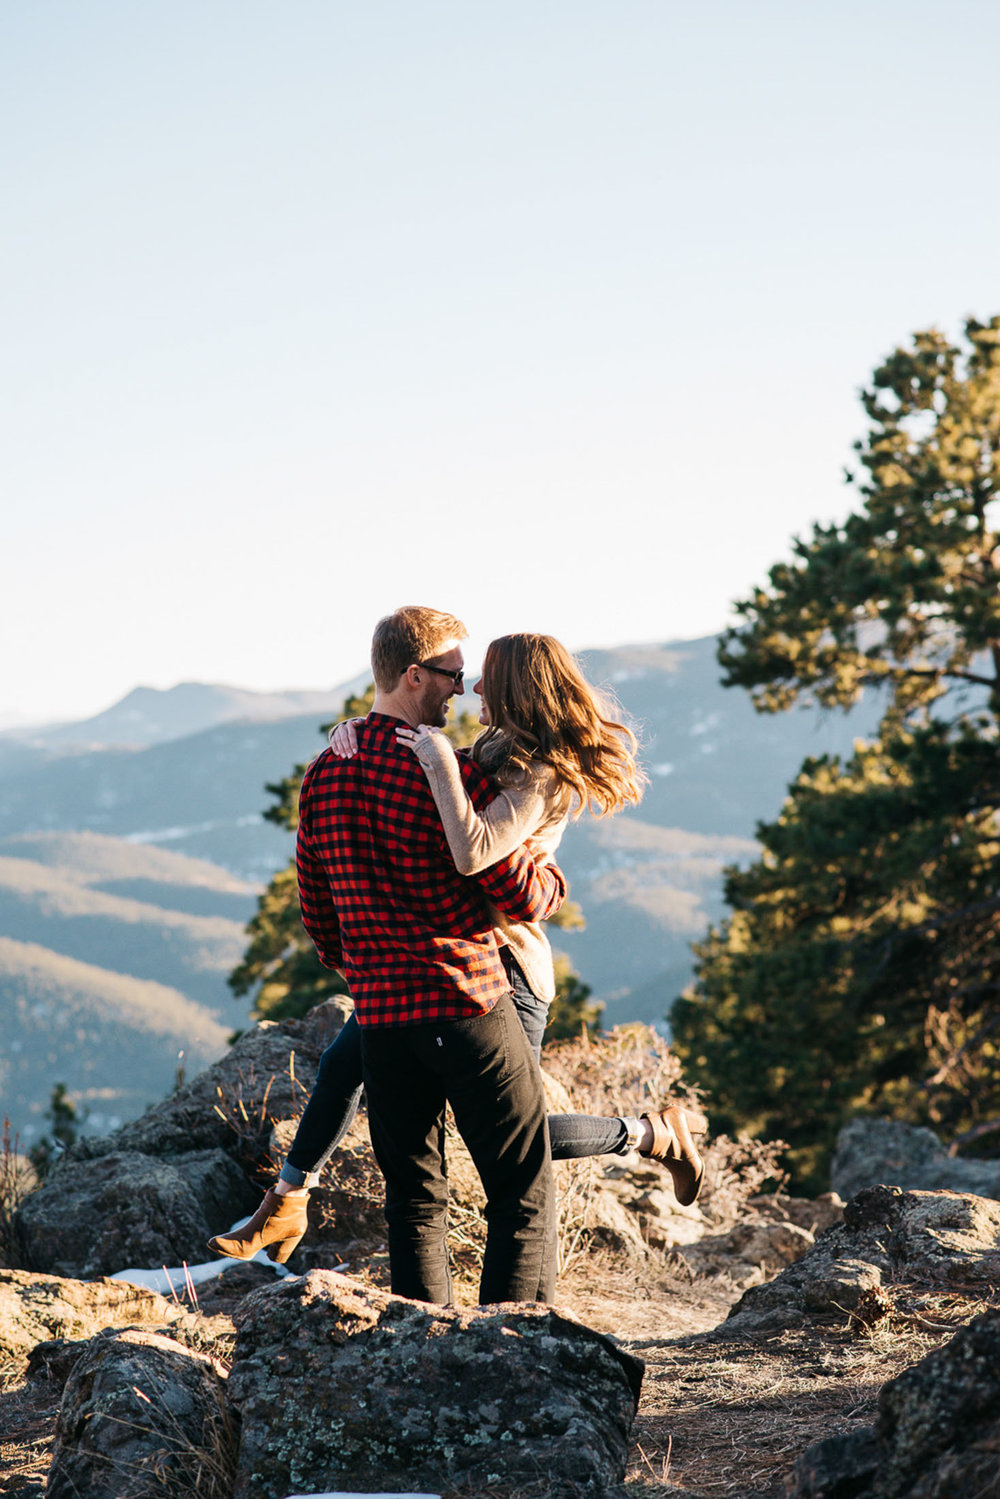 49-92couple-anniversary-engagement-photographer-colorado-mountain-wedding-photographer-carolyn&eric_engagement410.jpg